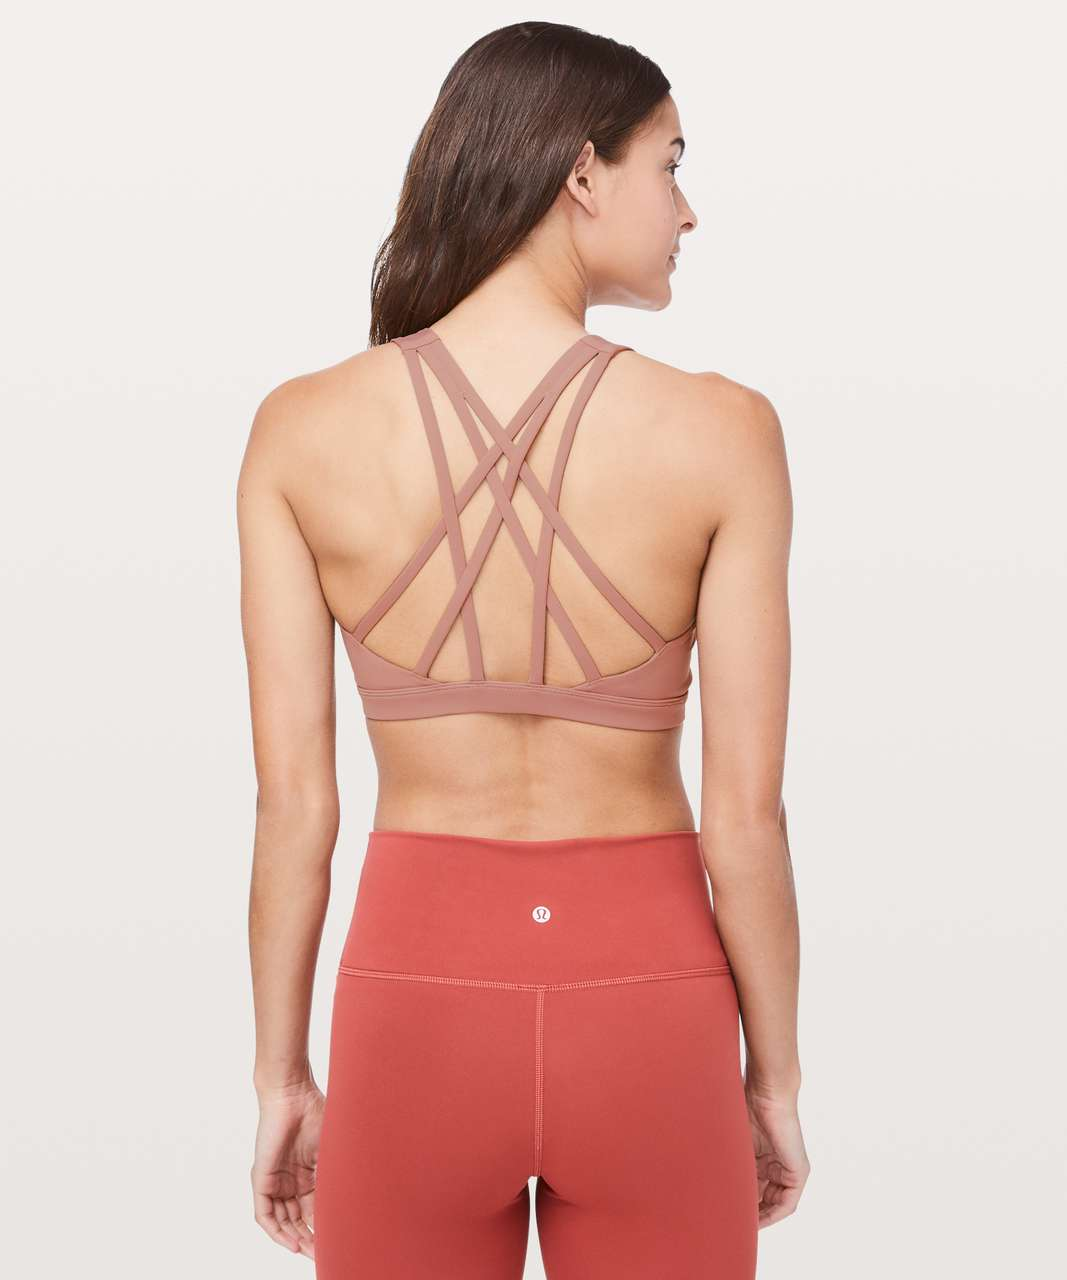 Lululemon Free To Be Serene Bra - Copper Coil